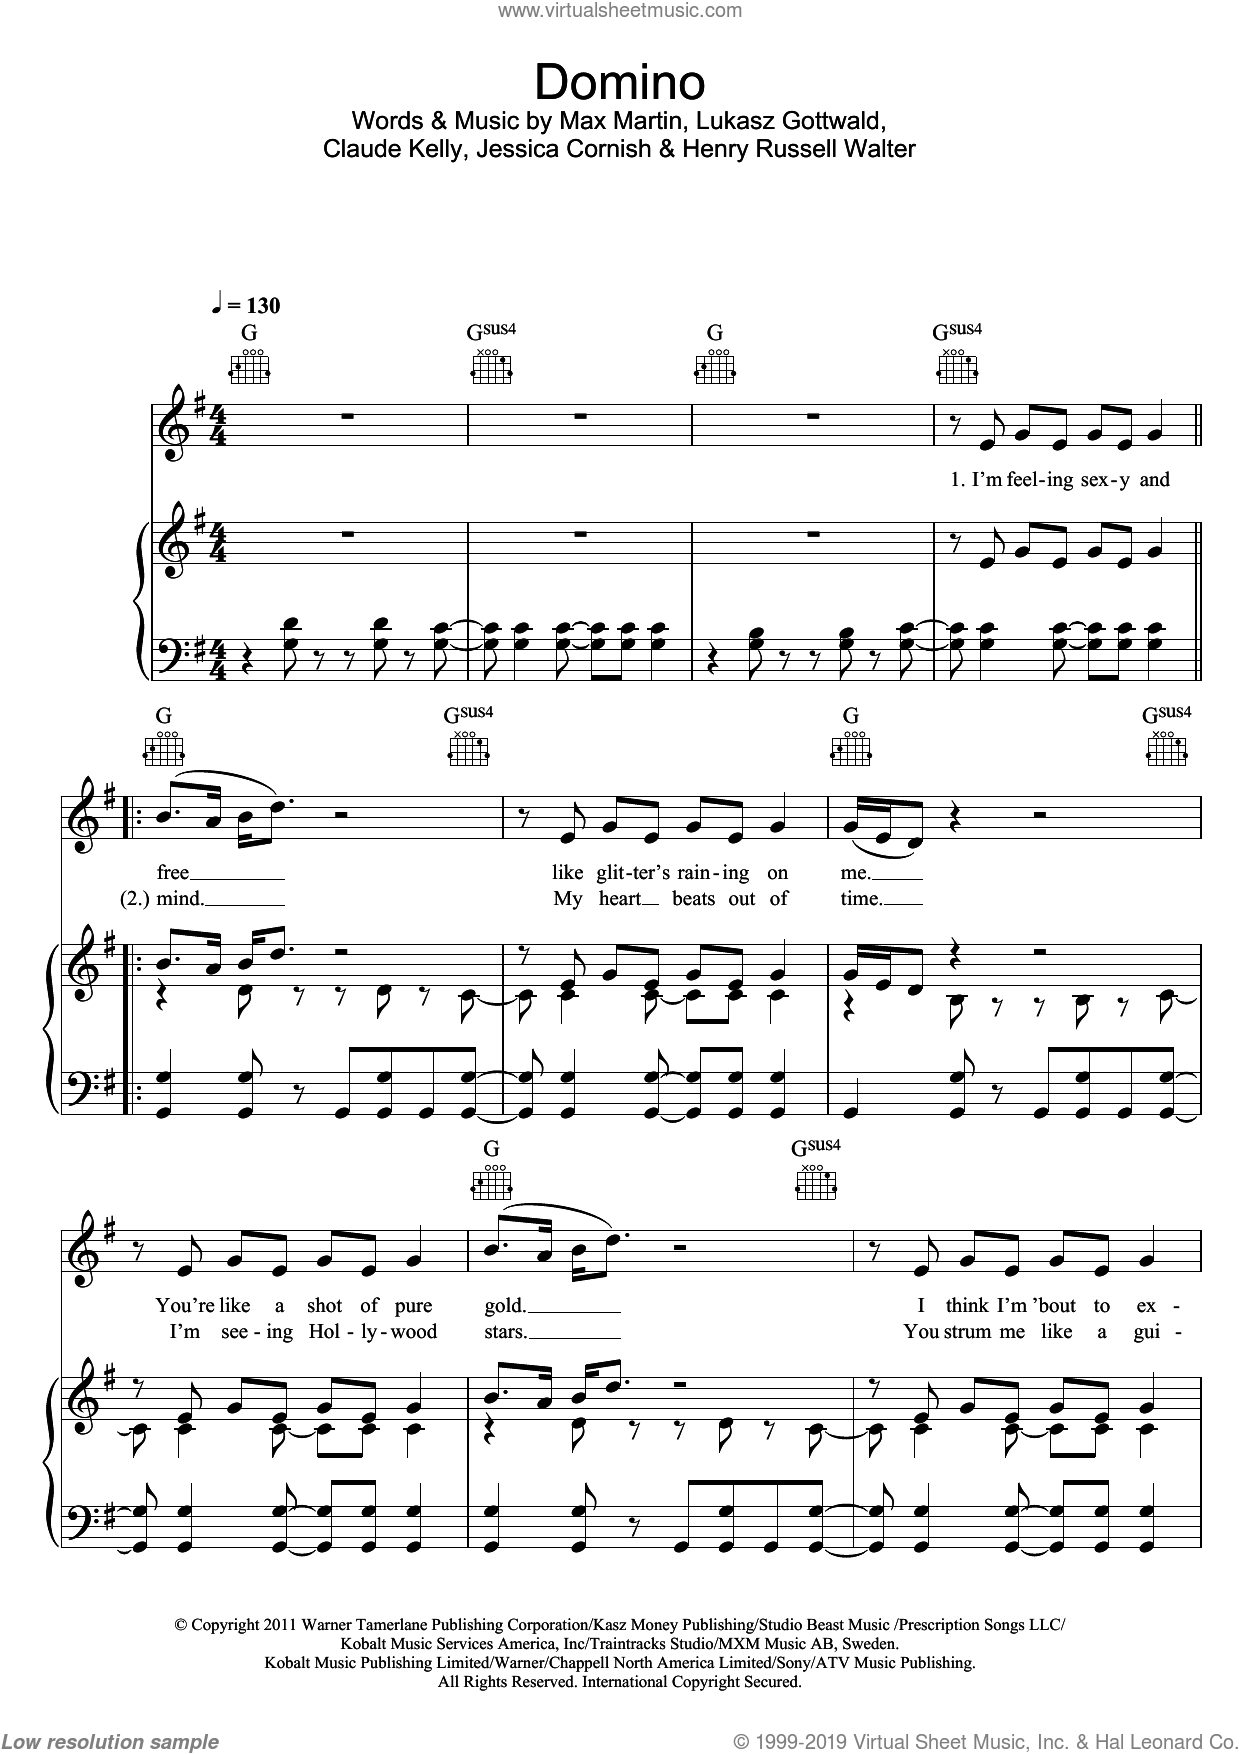 Domino sheet music for voice, piano or guitar by Jessie J, Claude Kelly, Henry Russell Walter, Jessica Cornish, Lukasz Gottwald and Max Martin, intermediate skill level